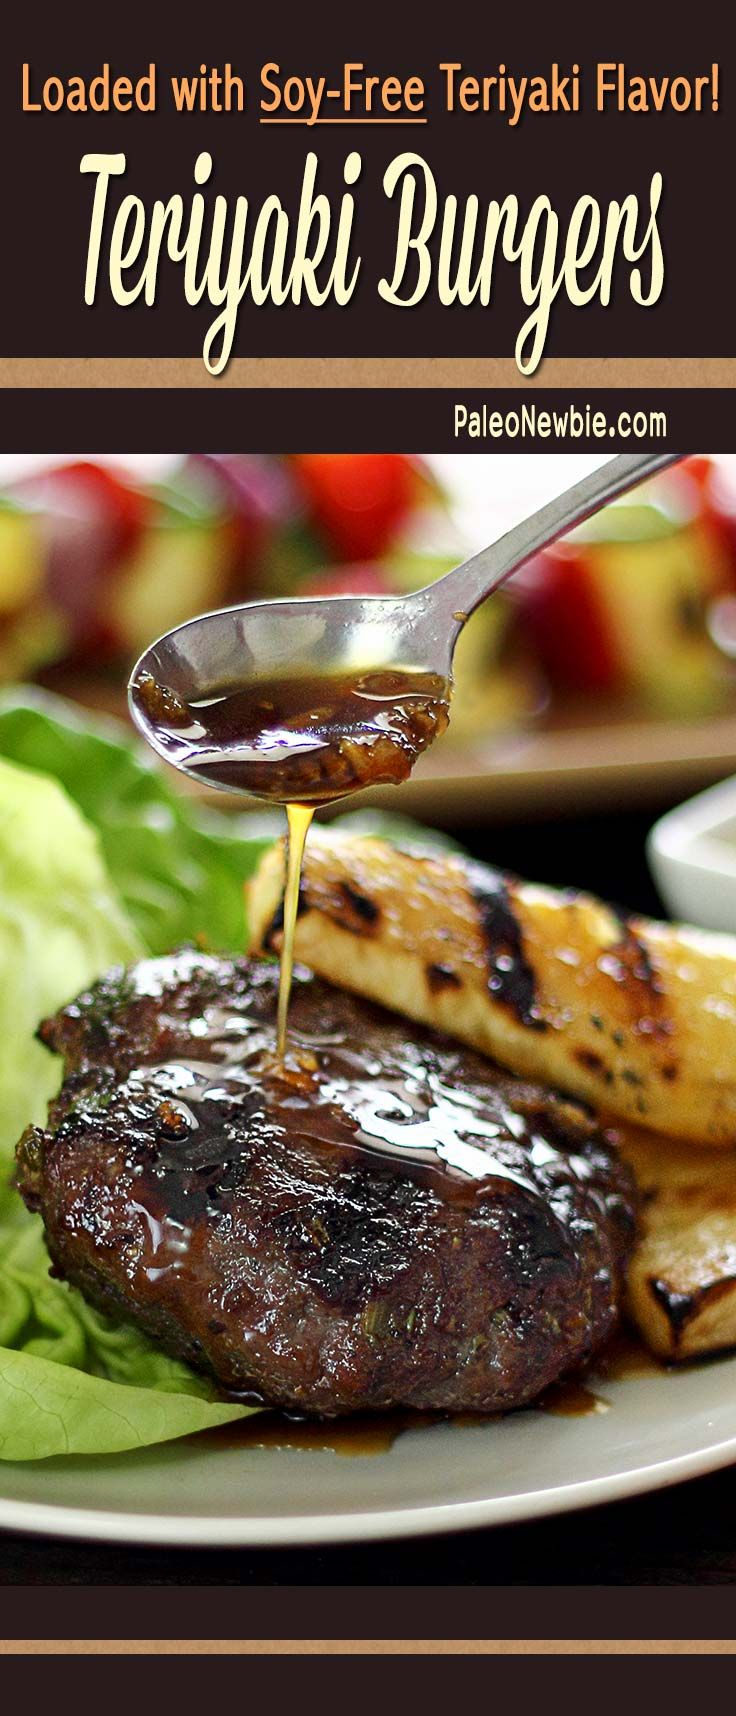 Simple and juicy grilled burgers – the secret is mixing the beef with a special soy-free teriyaki sauce you can make in minutes. Top them with extra sauce for even more flavor! #paleo #glutenfree